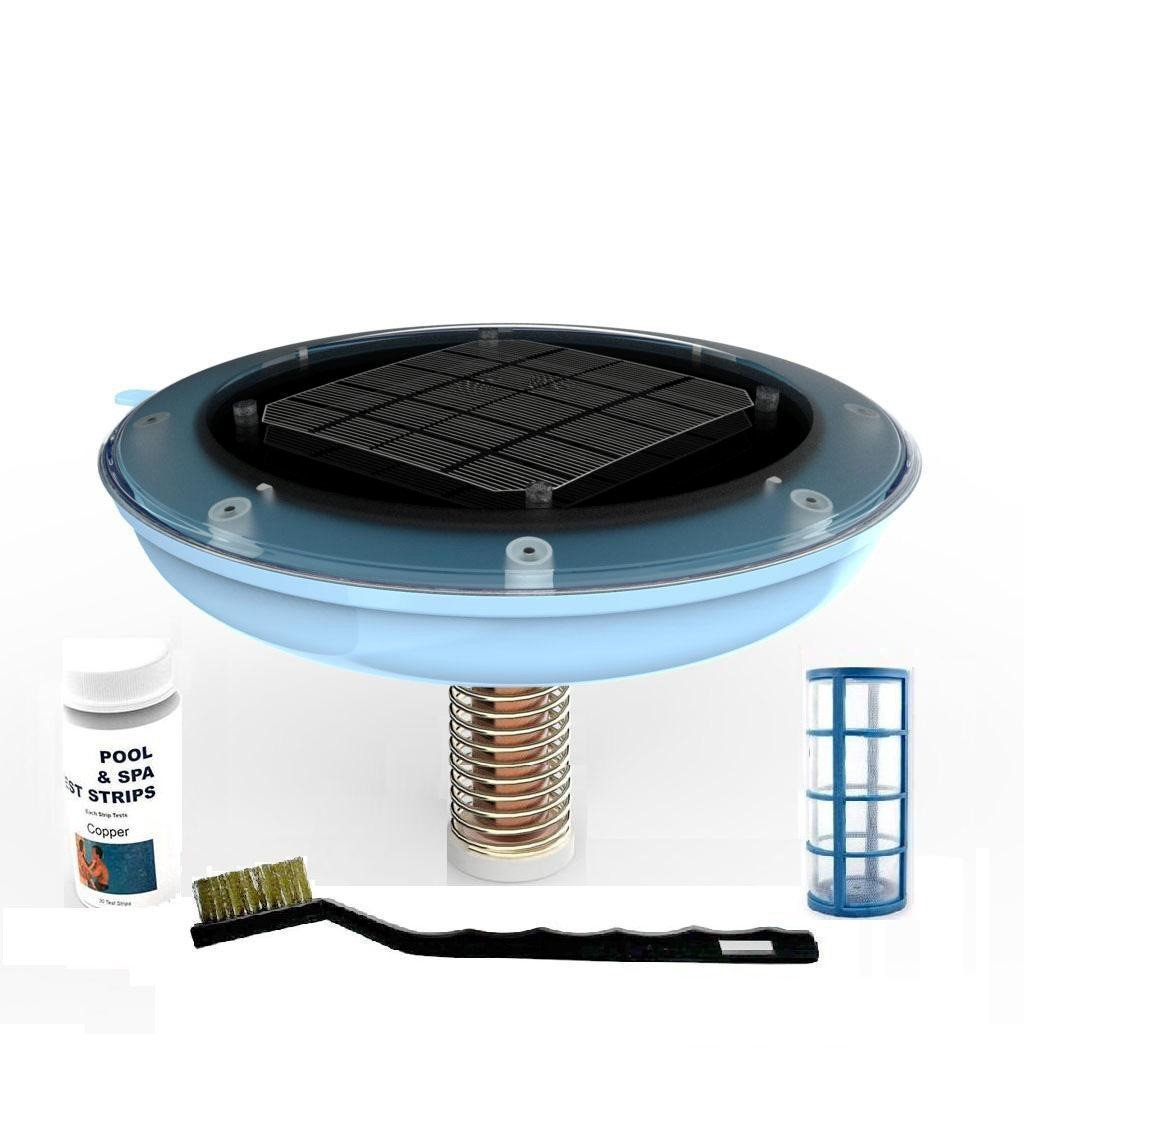 Peak Products Solar Pool Ionizer, Kills Algae Using 85% Less Chlorine, 100% Natural, Keeps Water Crystal Clear - Treats pools up to 35,000 Gallons And Includes Free Extra Copper Core by Peak Products